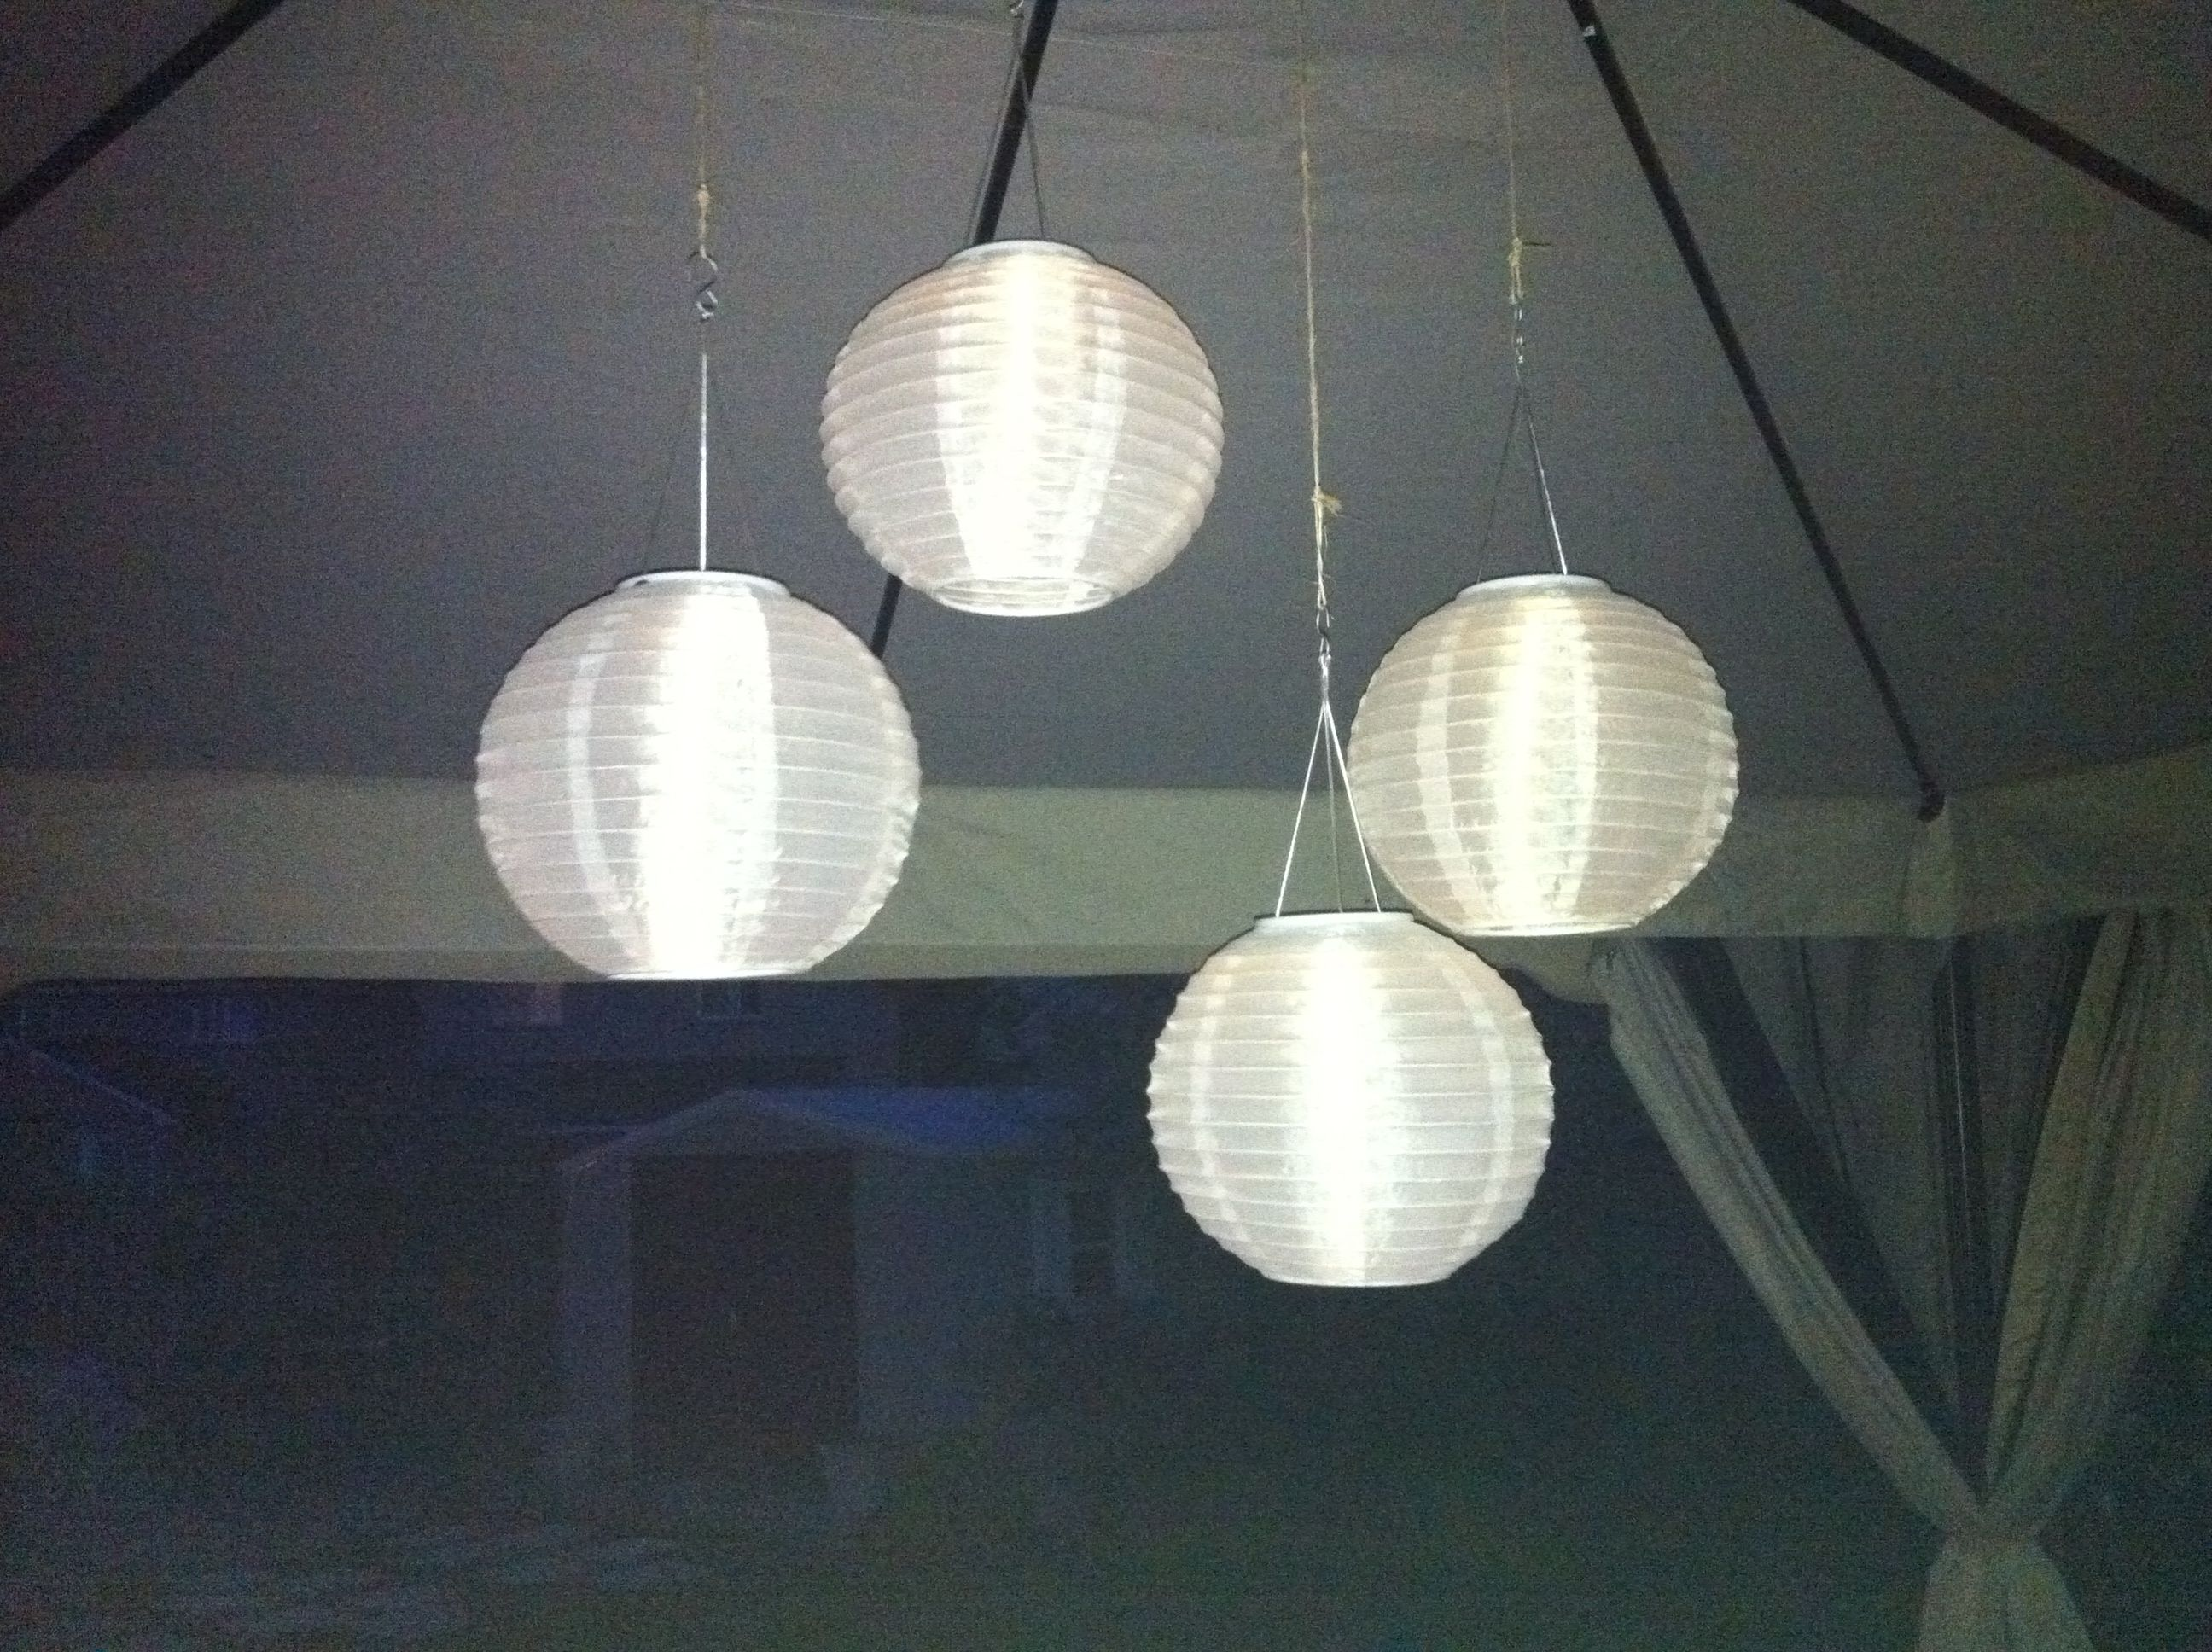 solar lights ikea pictures with led lampionnen ikea. Black Bedroom Furniture Sets. Home Design Ideas